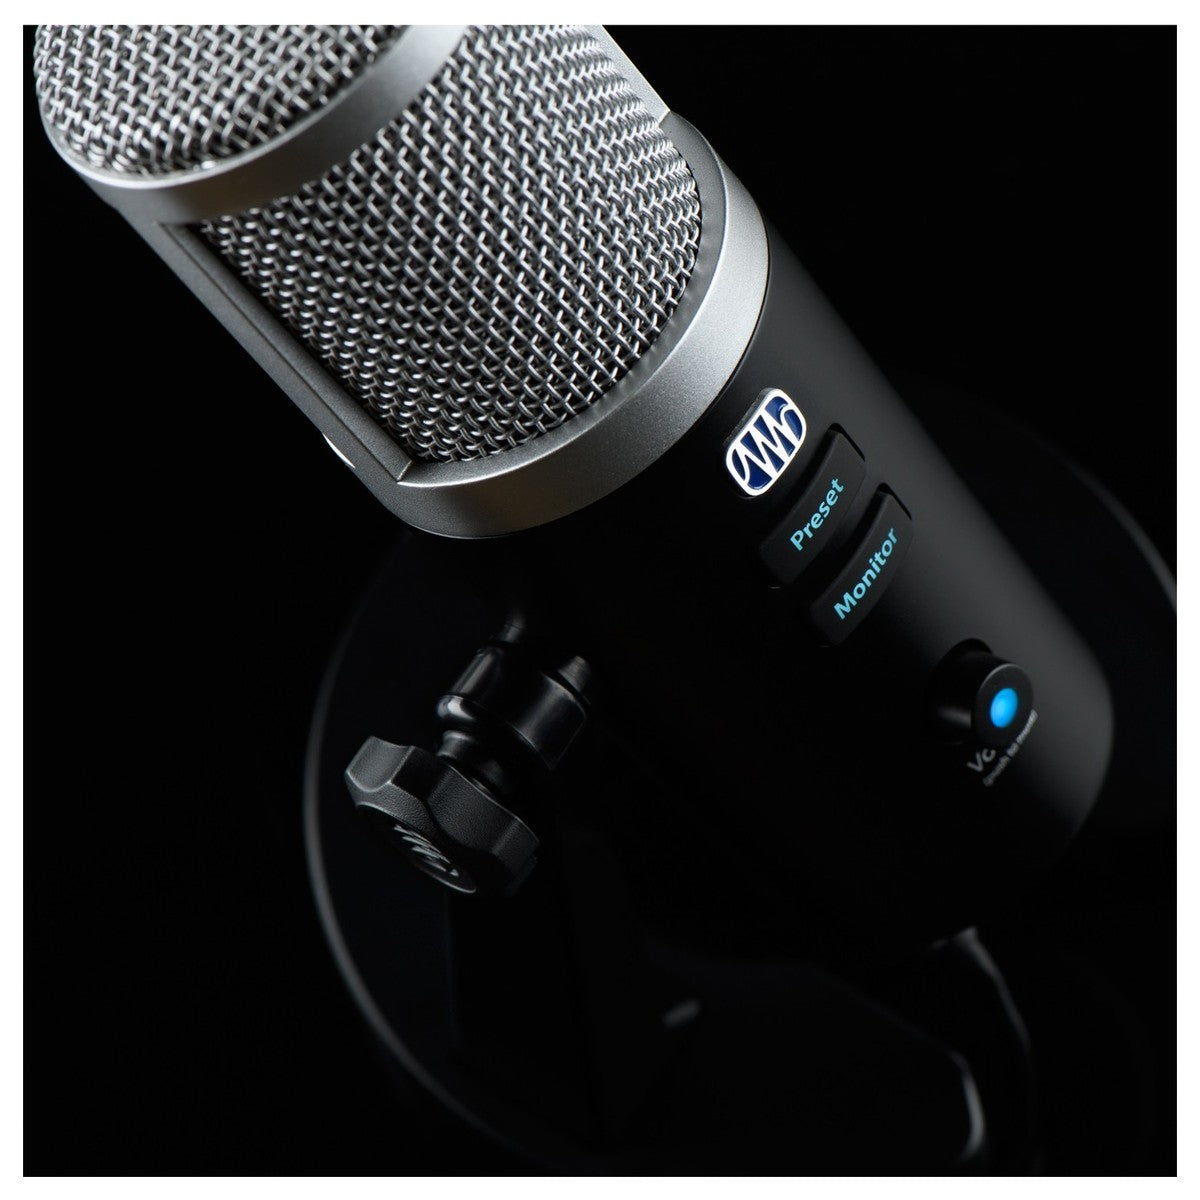 PreSonus Revelator: Professional USB microphone for streaming, podcasting, gaming, and more